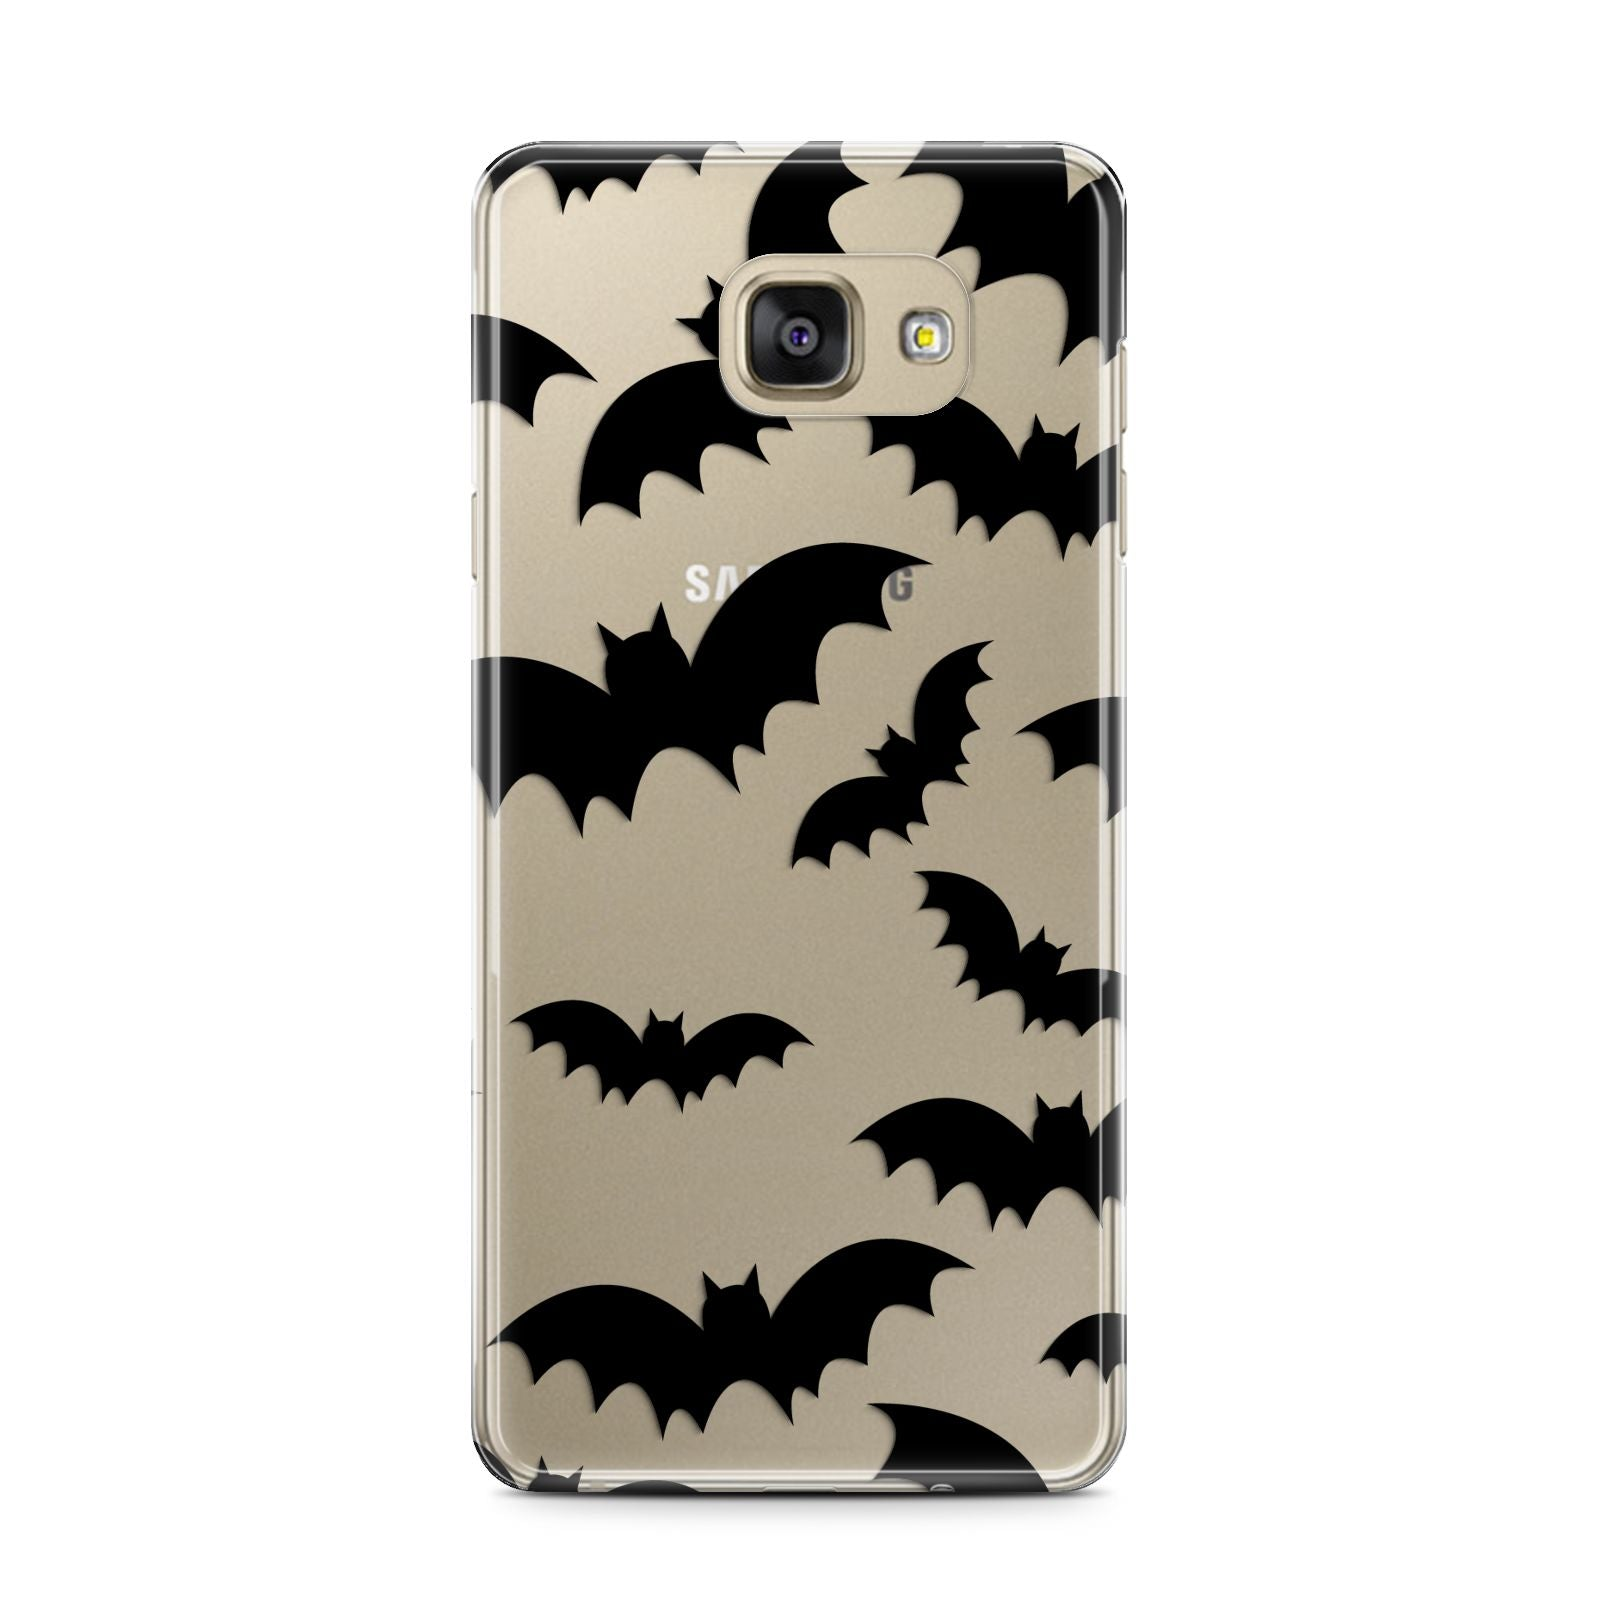 Bat Halloween Print Samsung Galaxy A7 2016 Case on gold phone